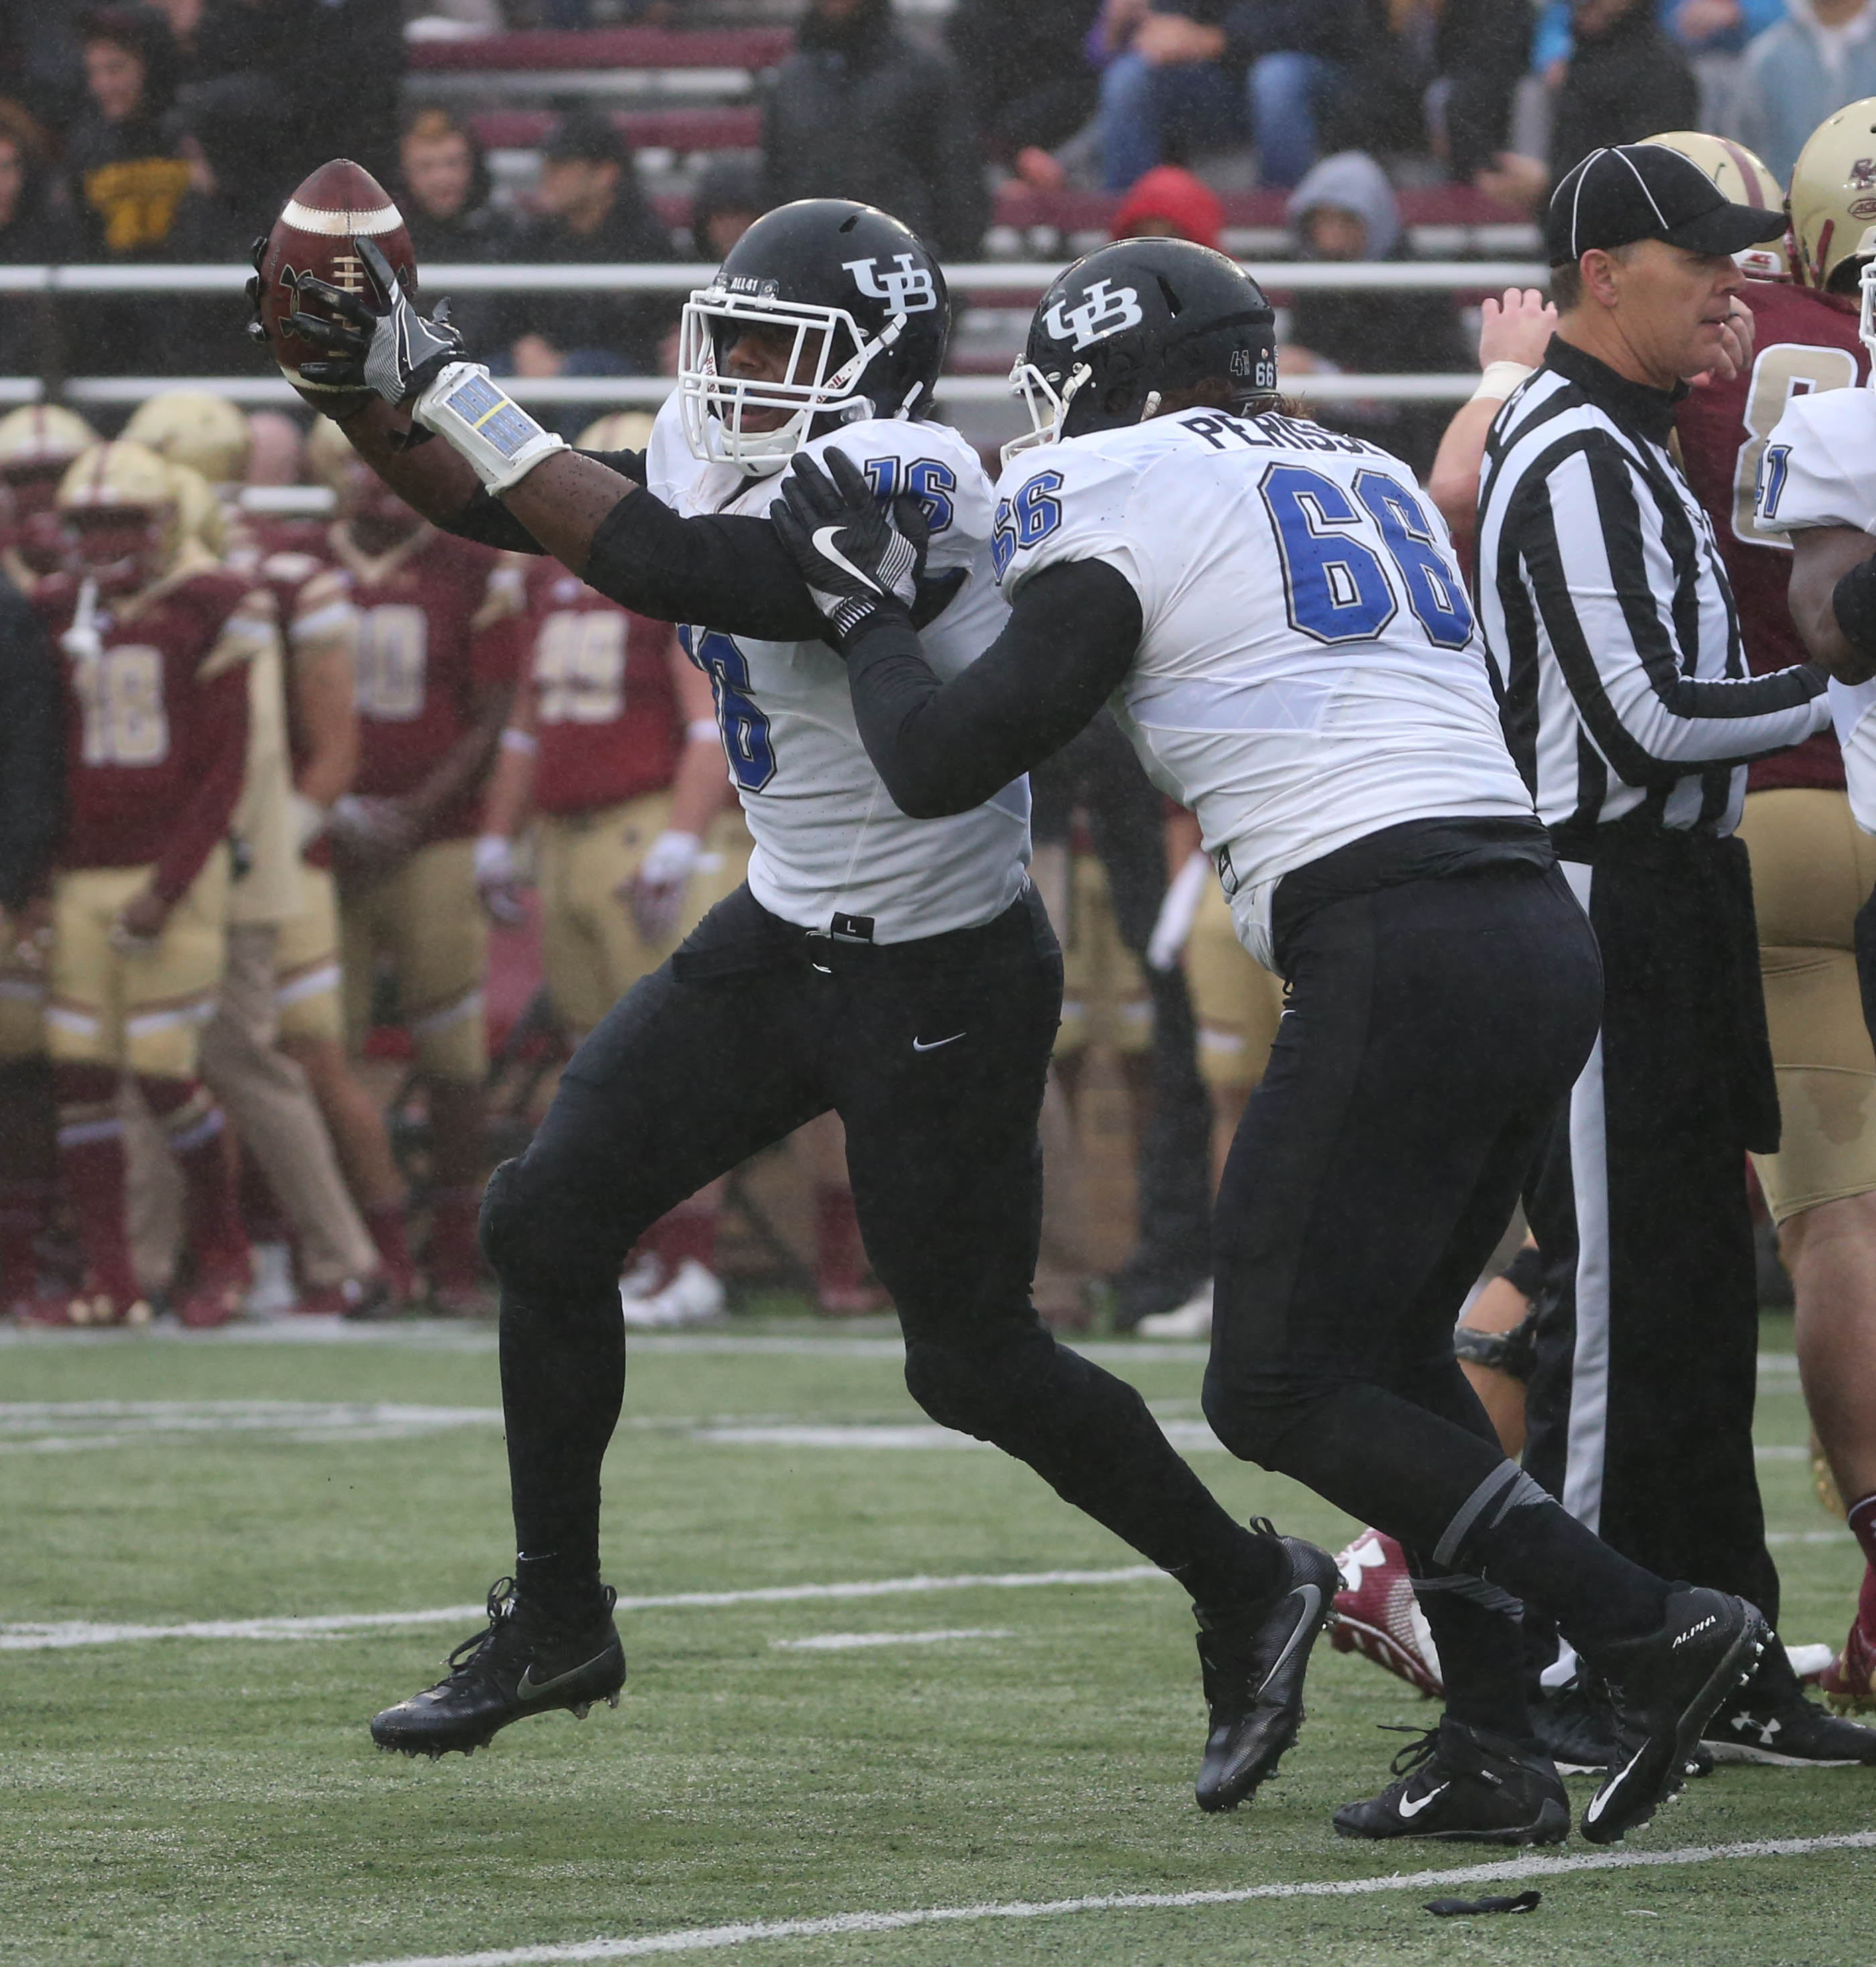 Buffalo Bulls linebacker Ishmael Hargrove (16)  sacks Boston College Eagles quarterback Patrick Towles (8)  and recovers a fumble in the first half at Alumni stadium in Boston, N.Y. on Saturday, Oct. 1, 2016.  (James P. McCoy/ Buffalo News)